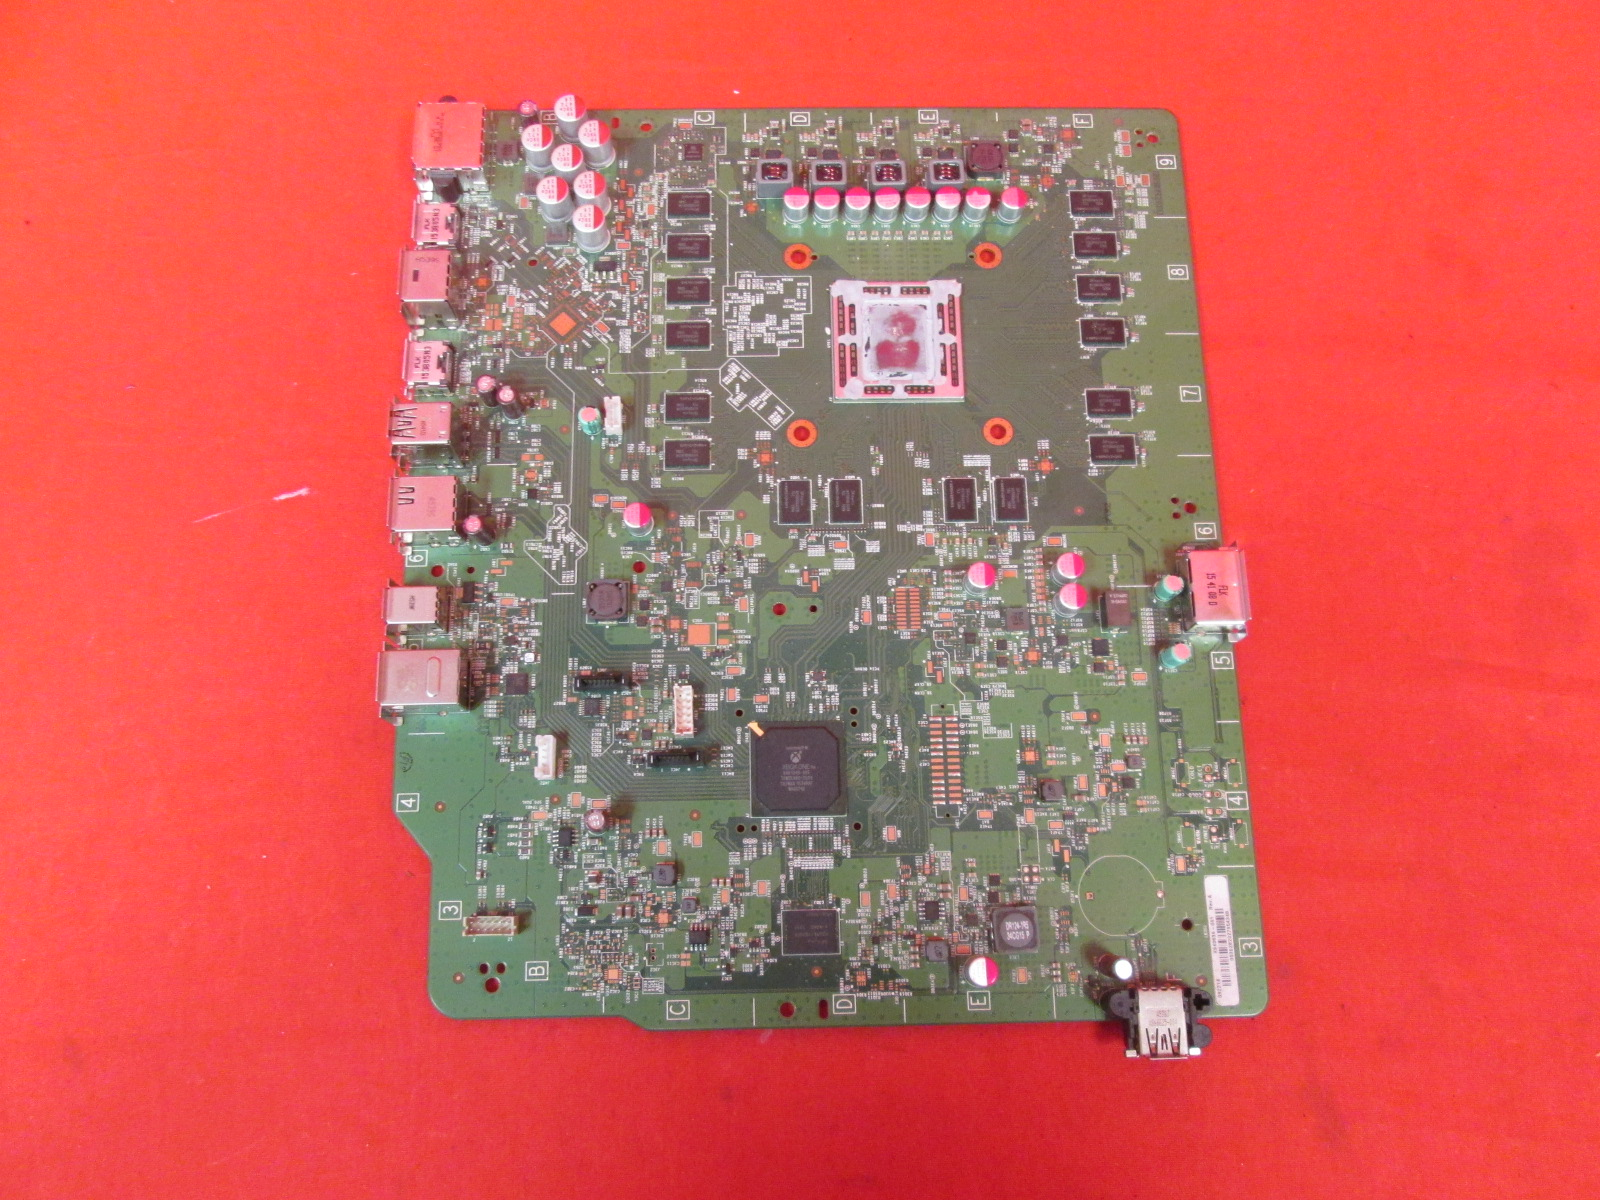 Broken Microsoft OEM Motherboard For Xbox One Console